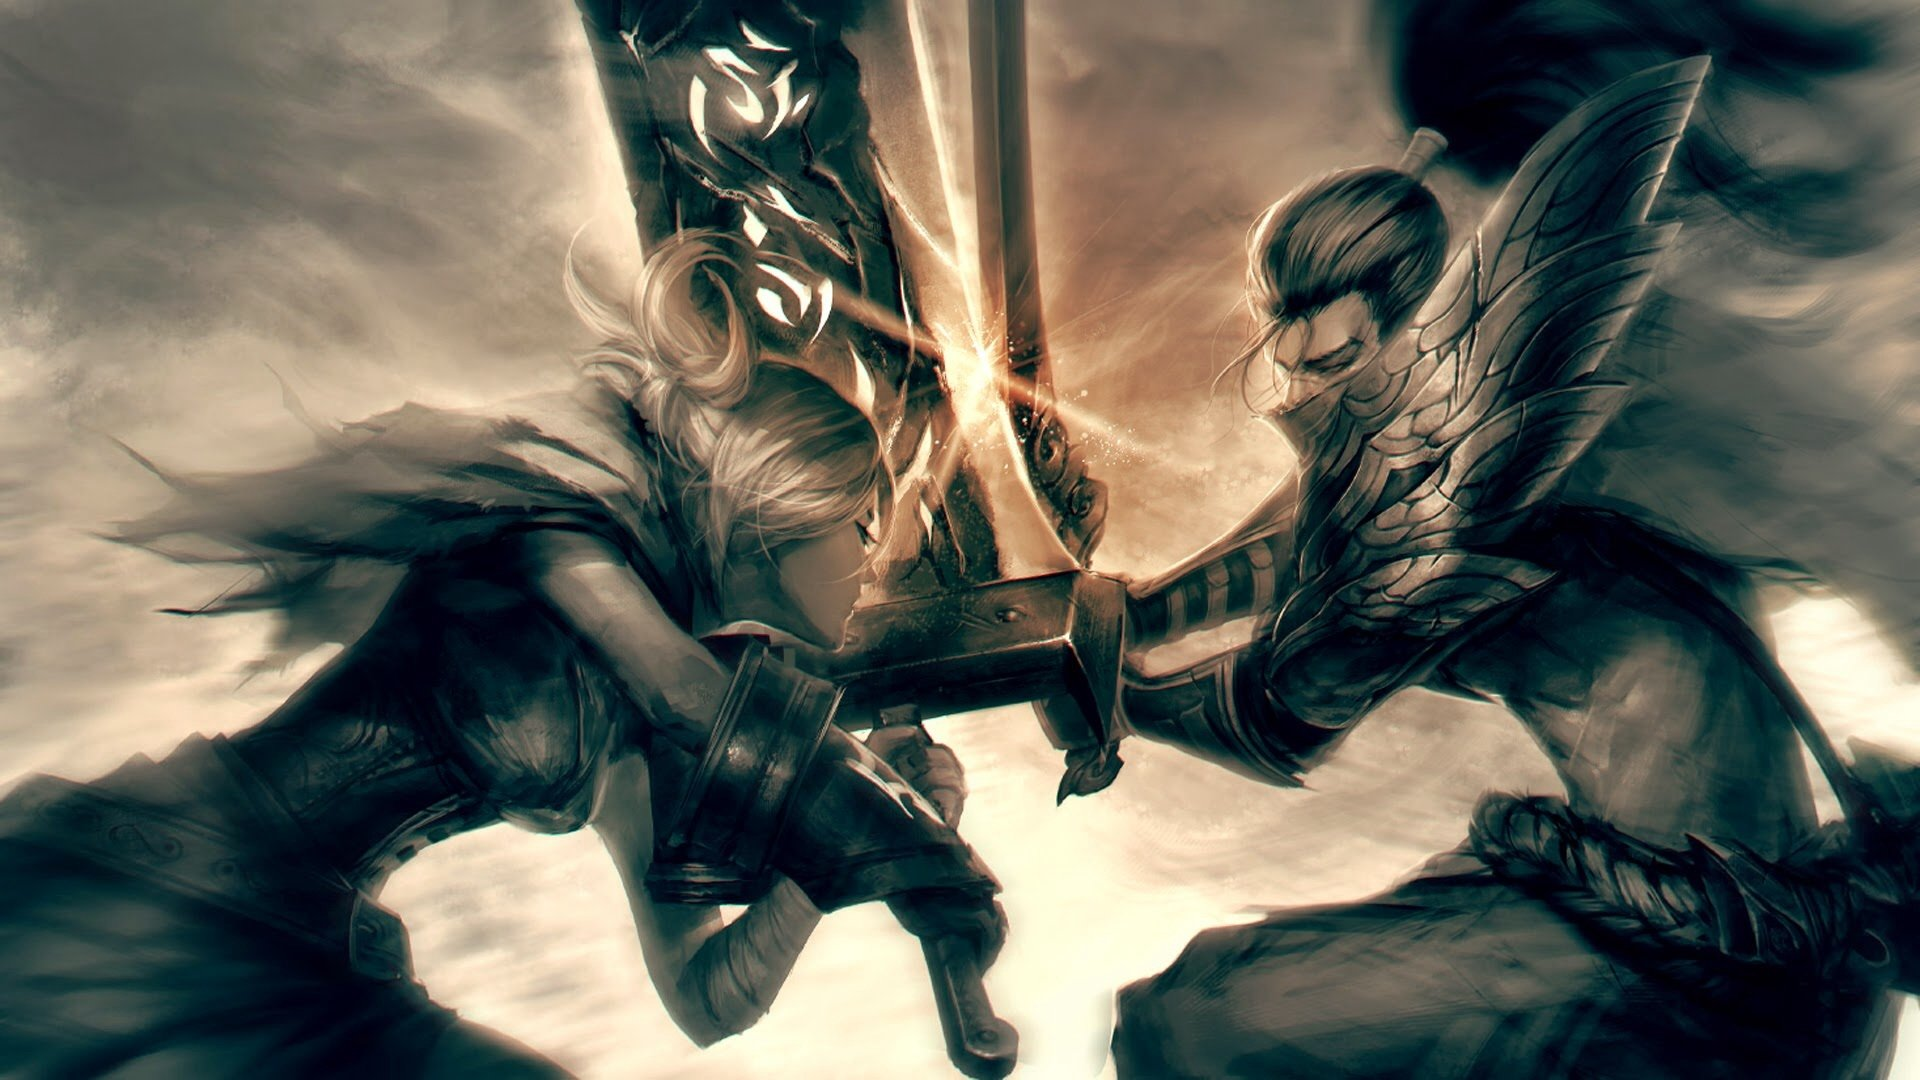 Video Game - League Of Legends  Yasuo (League Of Legends) Riven (League Of Legends) Wallpaper